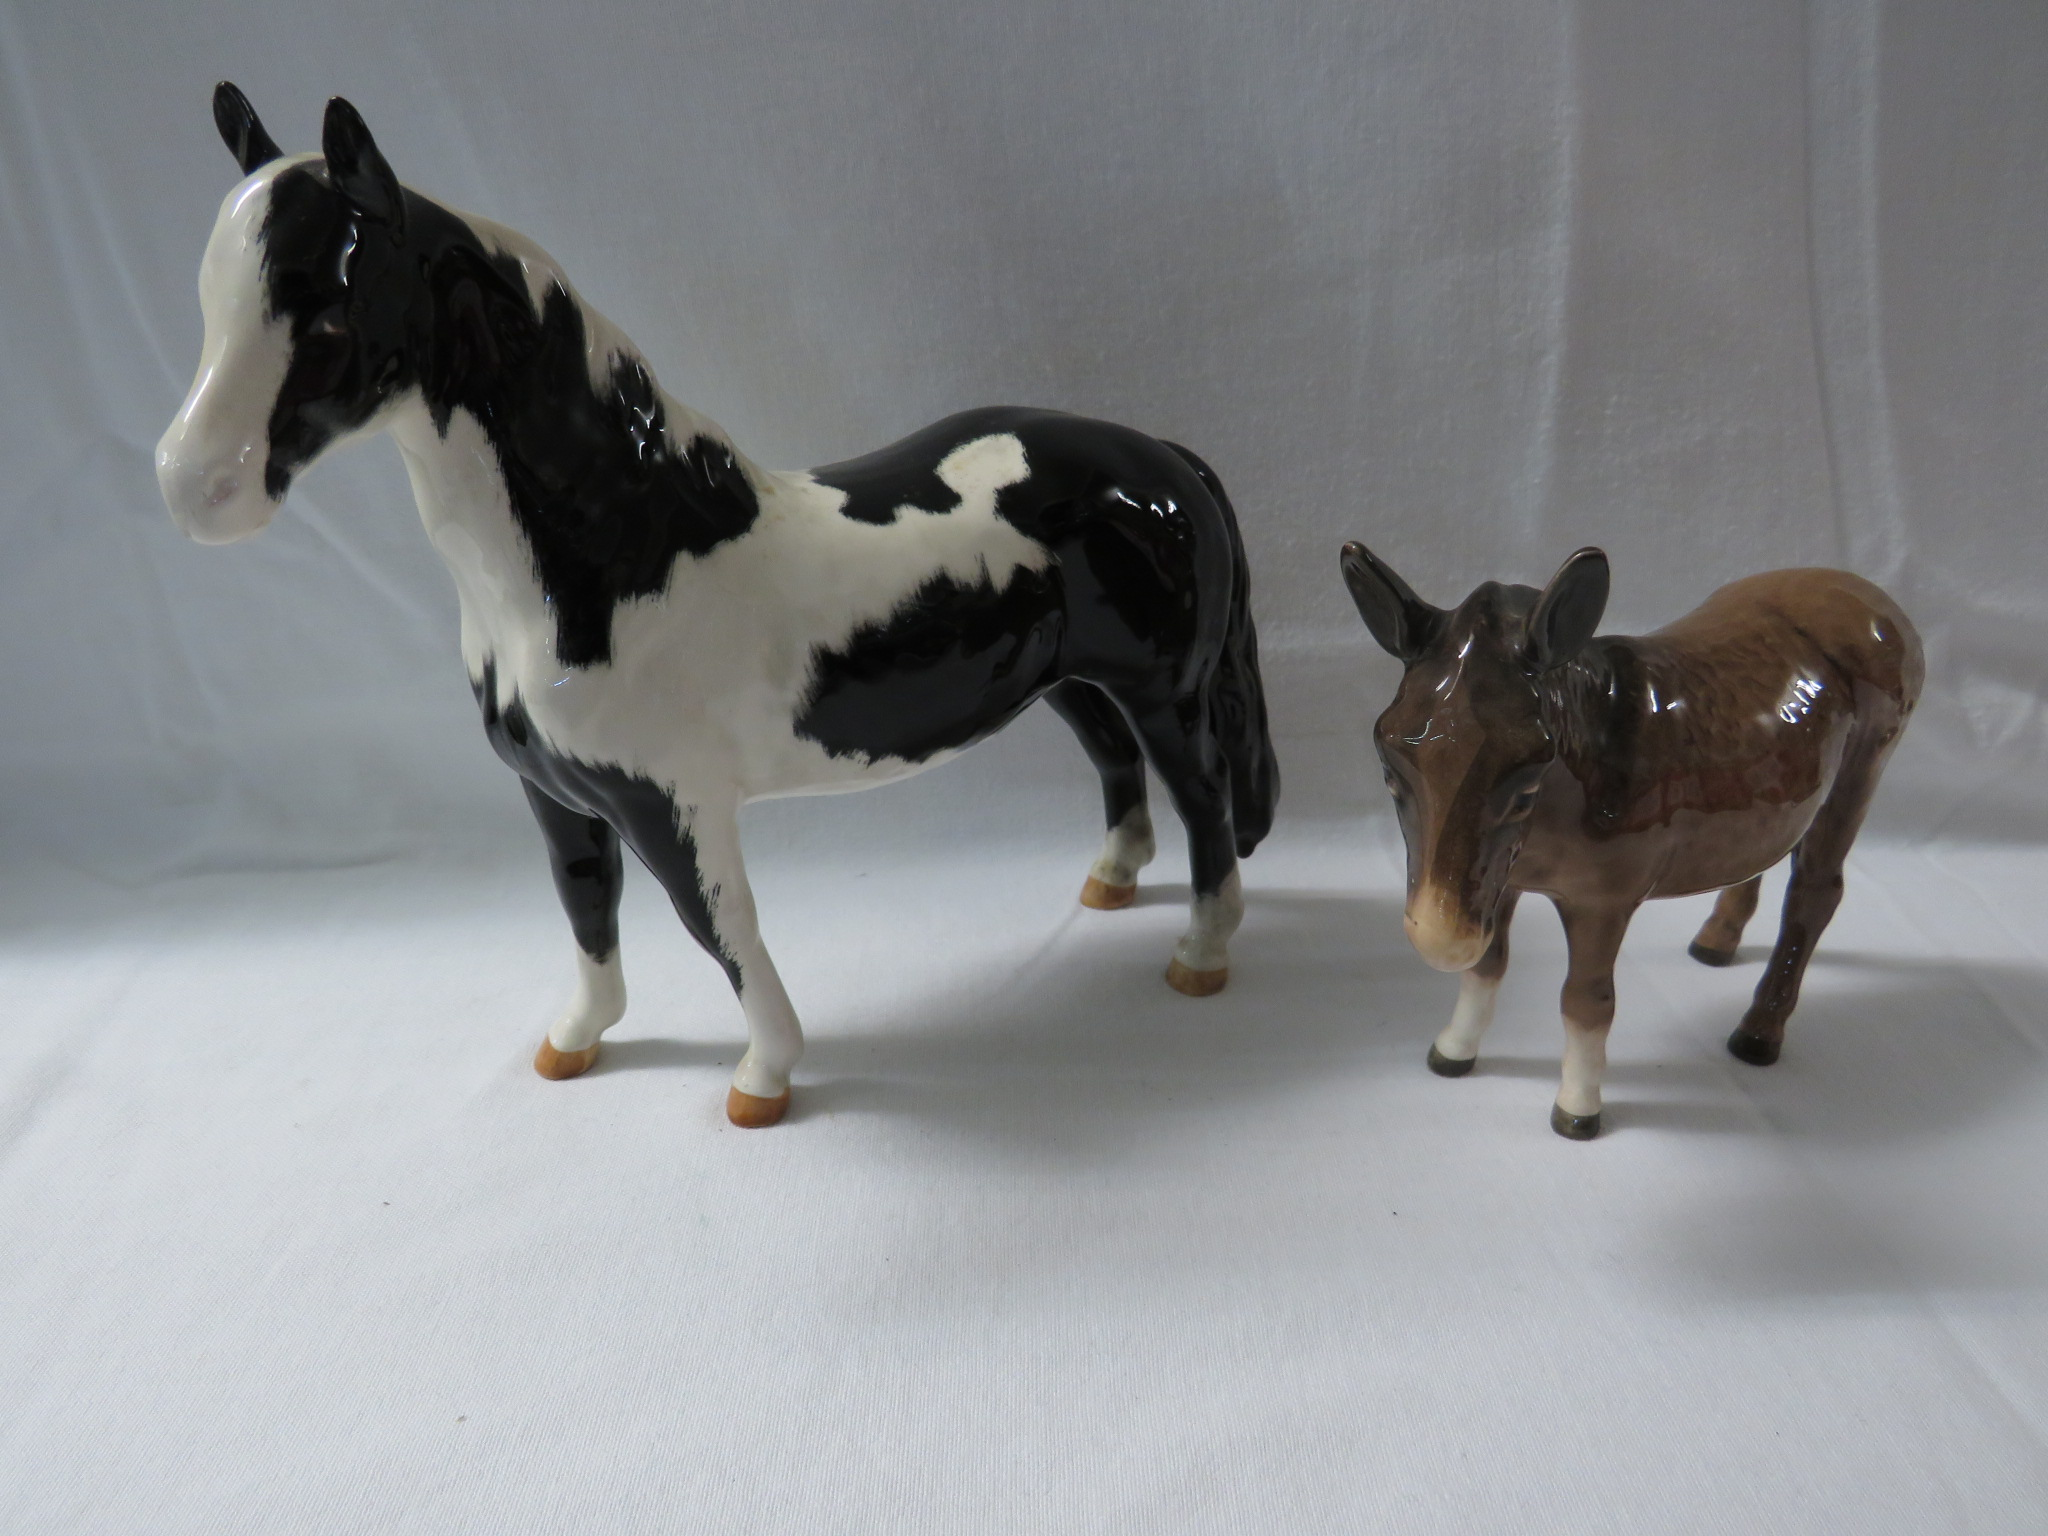 Lot 44 - Five Beswick equestrian models - a Dartmoor pony, an Exmoor pony, a brown horse, a black and white